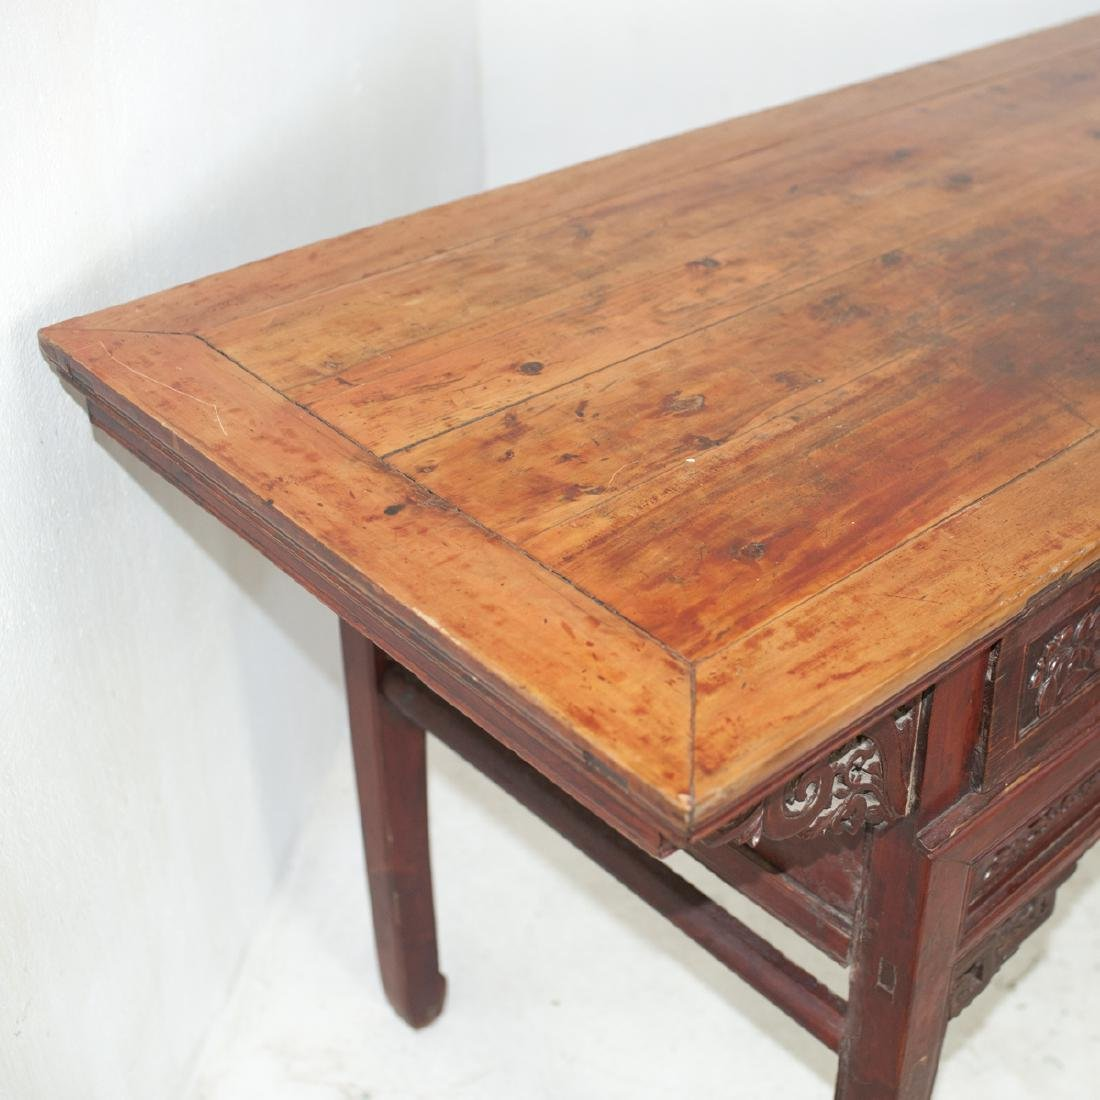 Antique Chinese Wooden Altar Table - 3